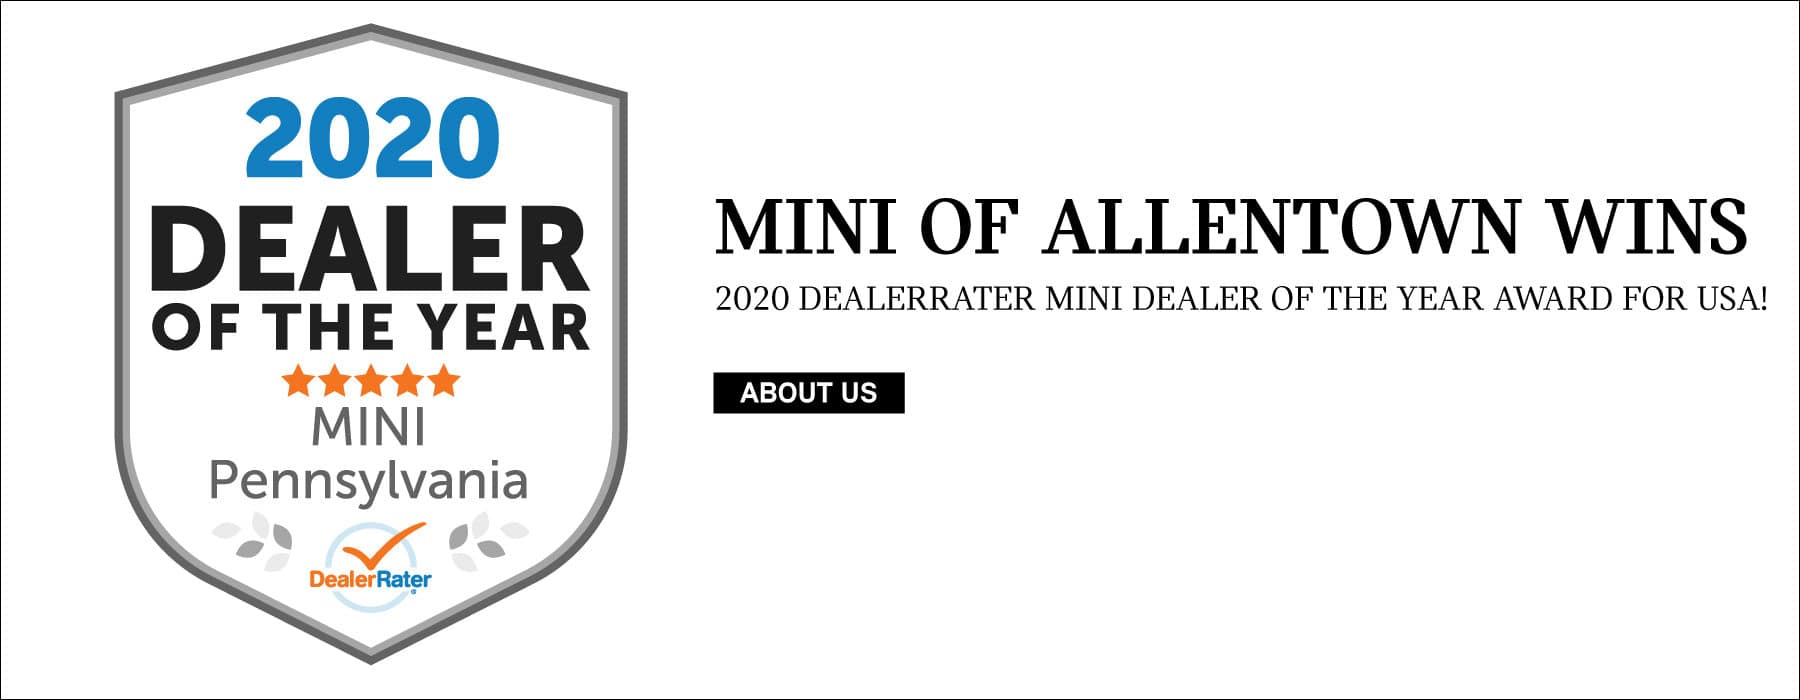 MINI of Allentown Wins 2020 Dealerrater MINI dealer of the year award for USA!